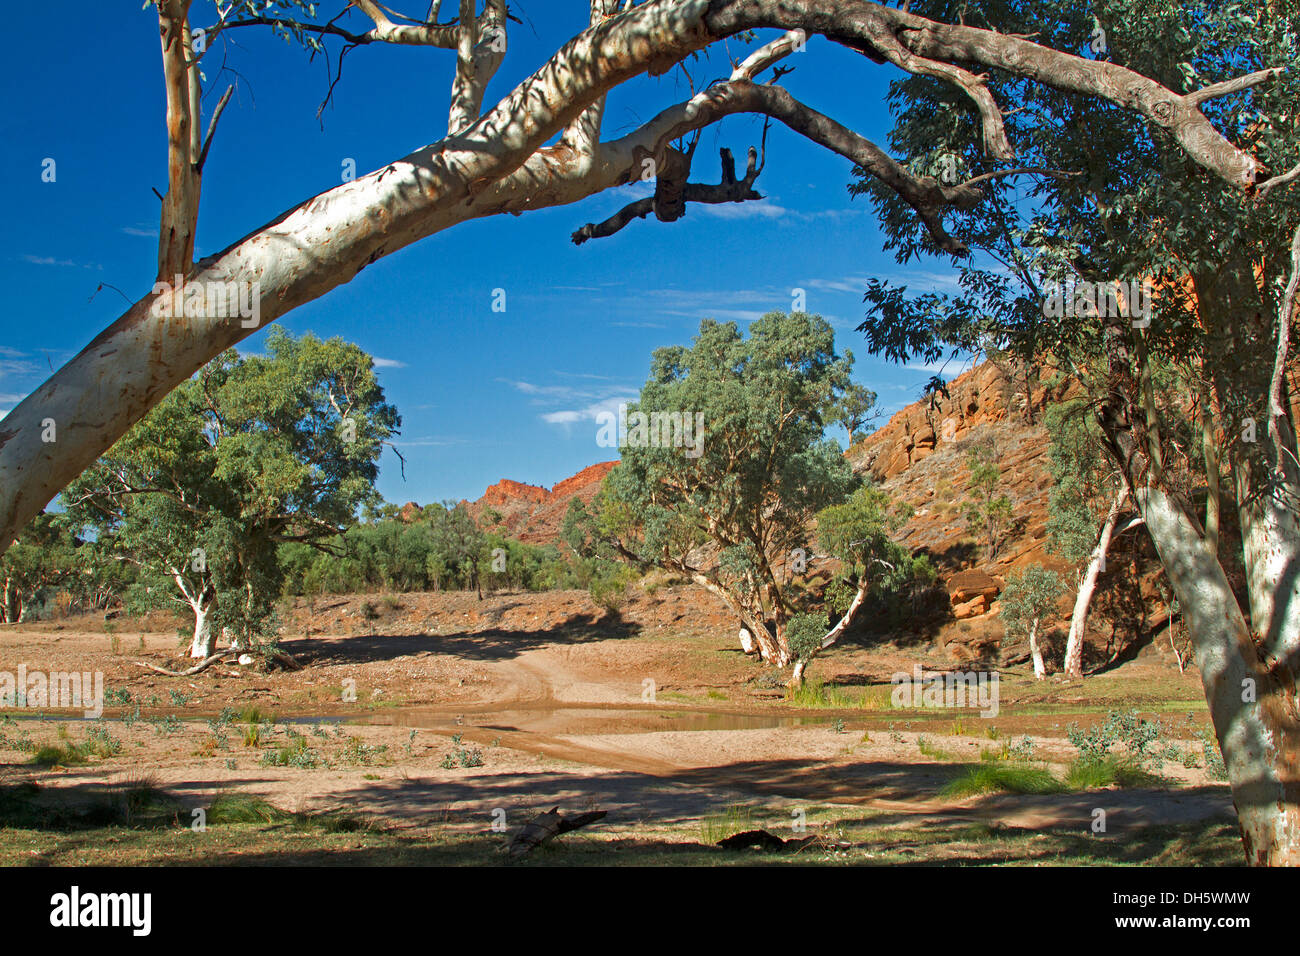 Australian outback landscape with track / road beside red rocks and ghost gums crossing shallow Ross River, Northern Territory - Stock Image